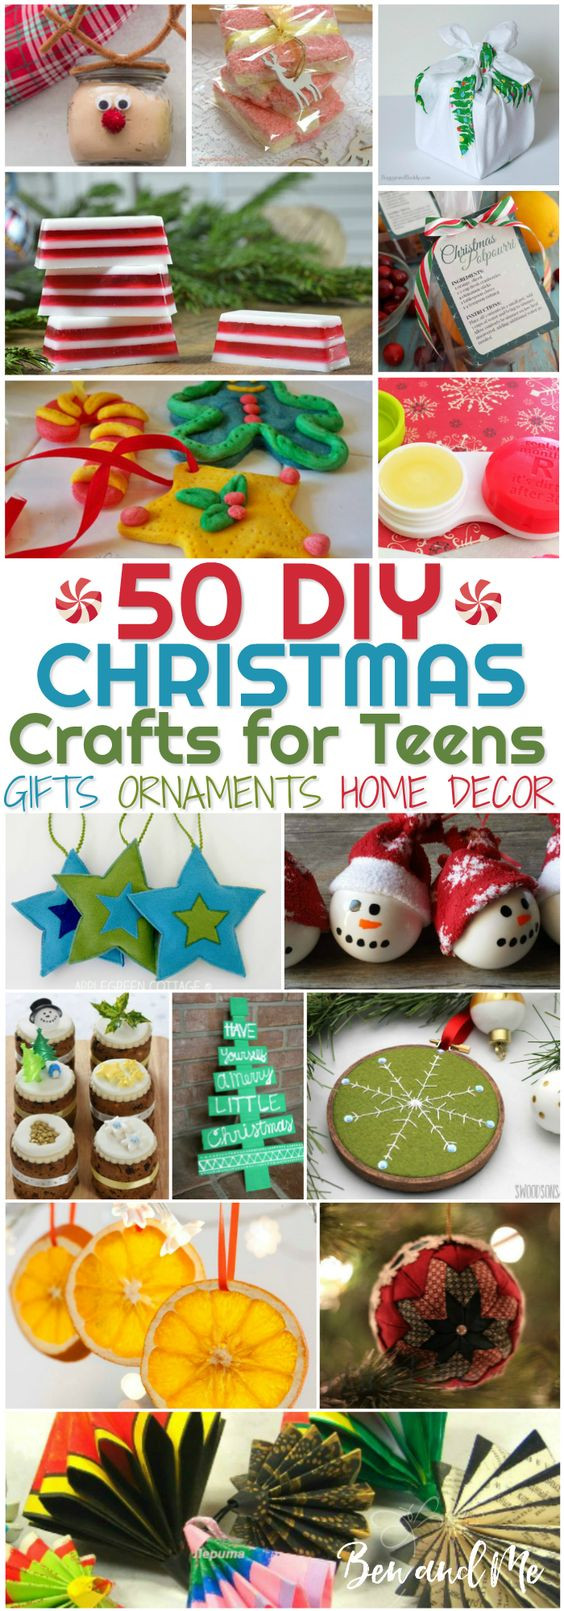 Best ideas about Christmas Crafts For Teen . Save or Pin DIY Christmas Crafts for Teens Homeschool Giveaways Now.